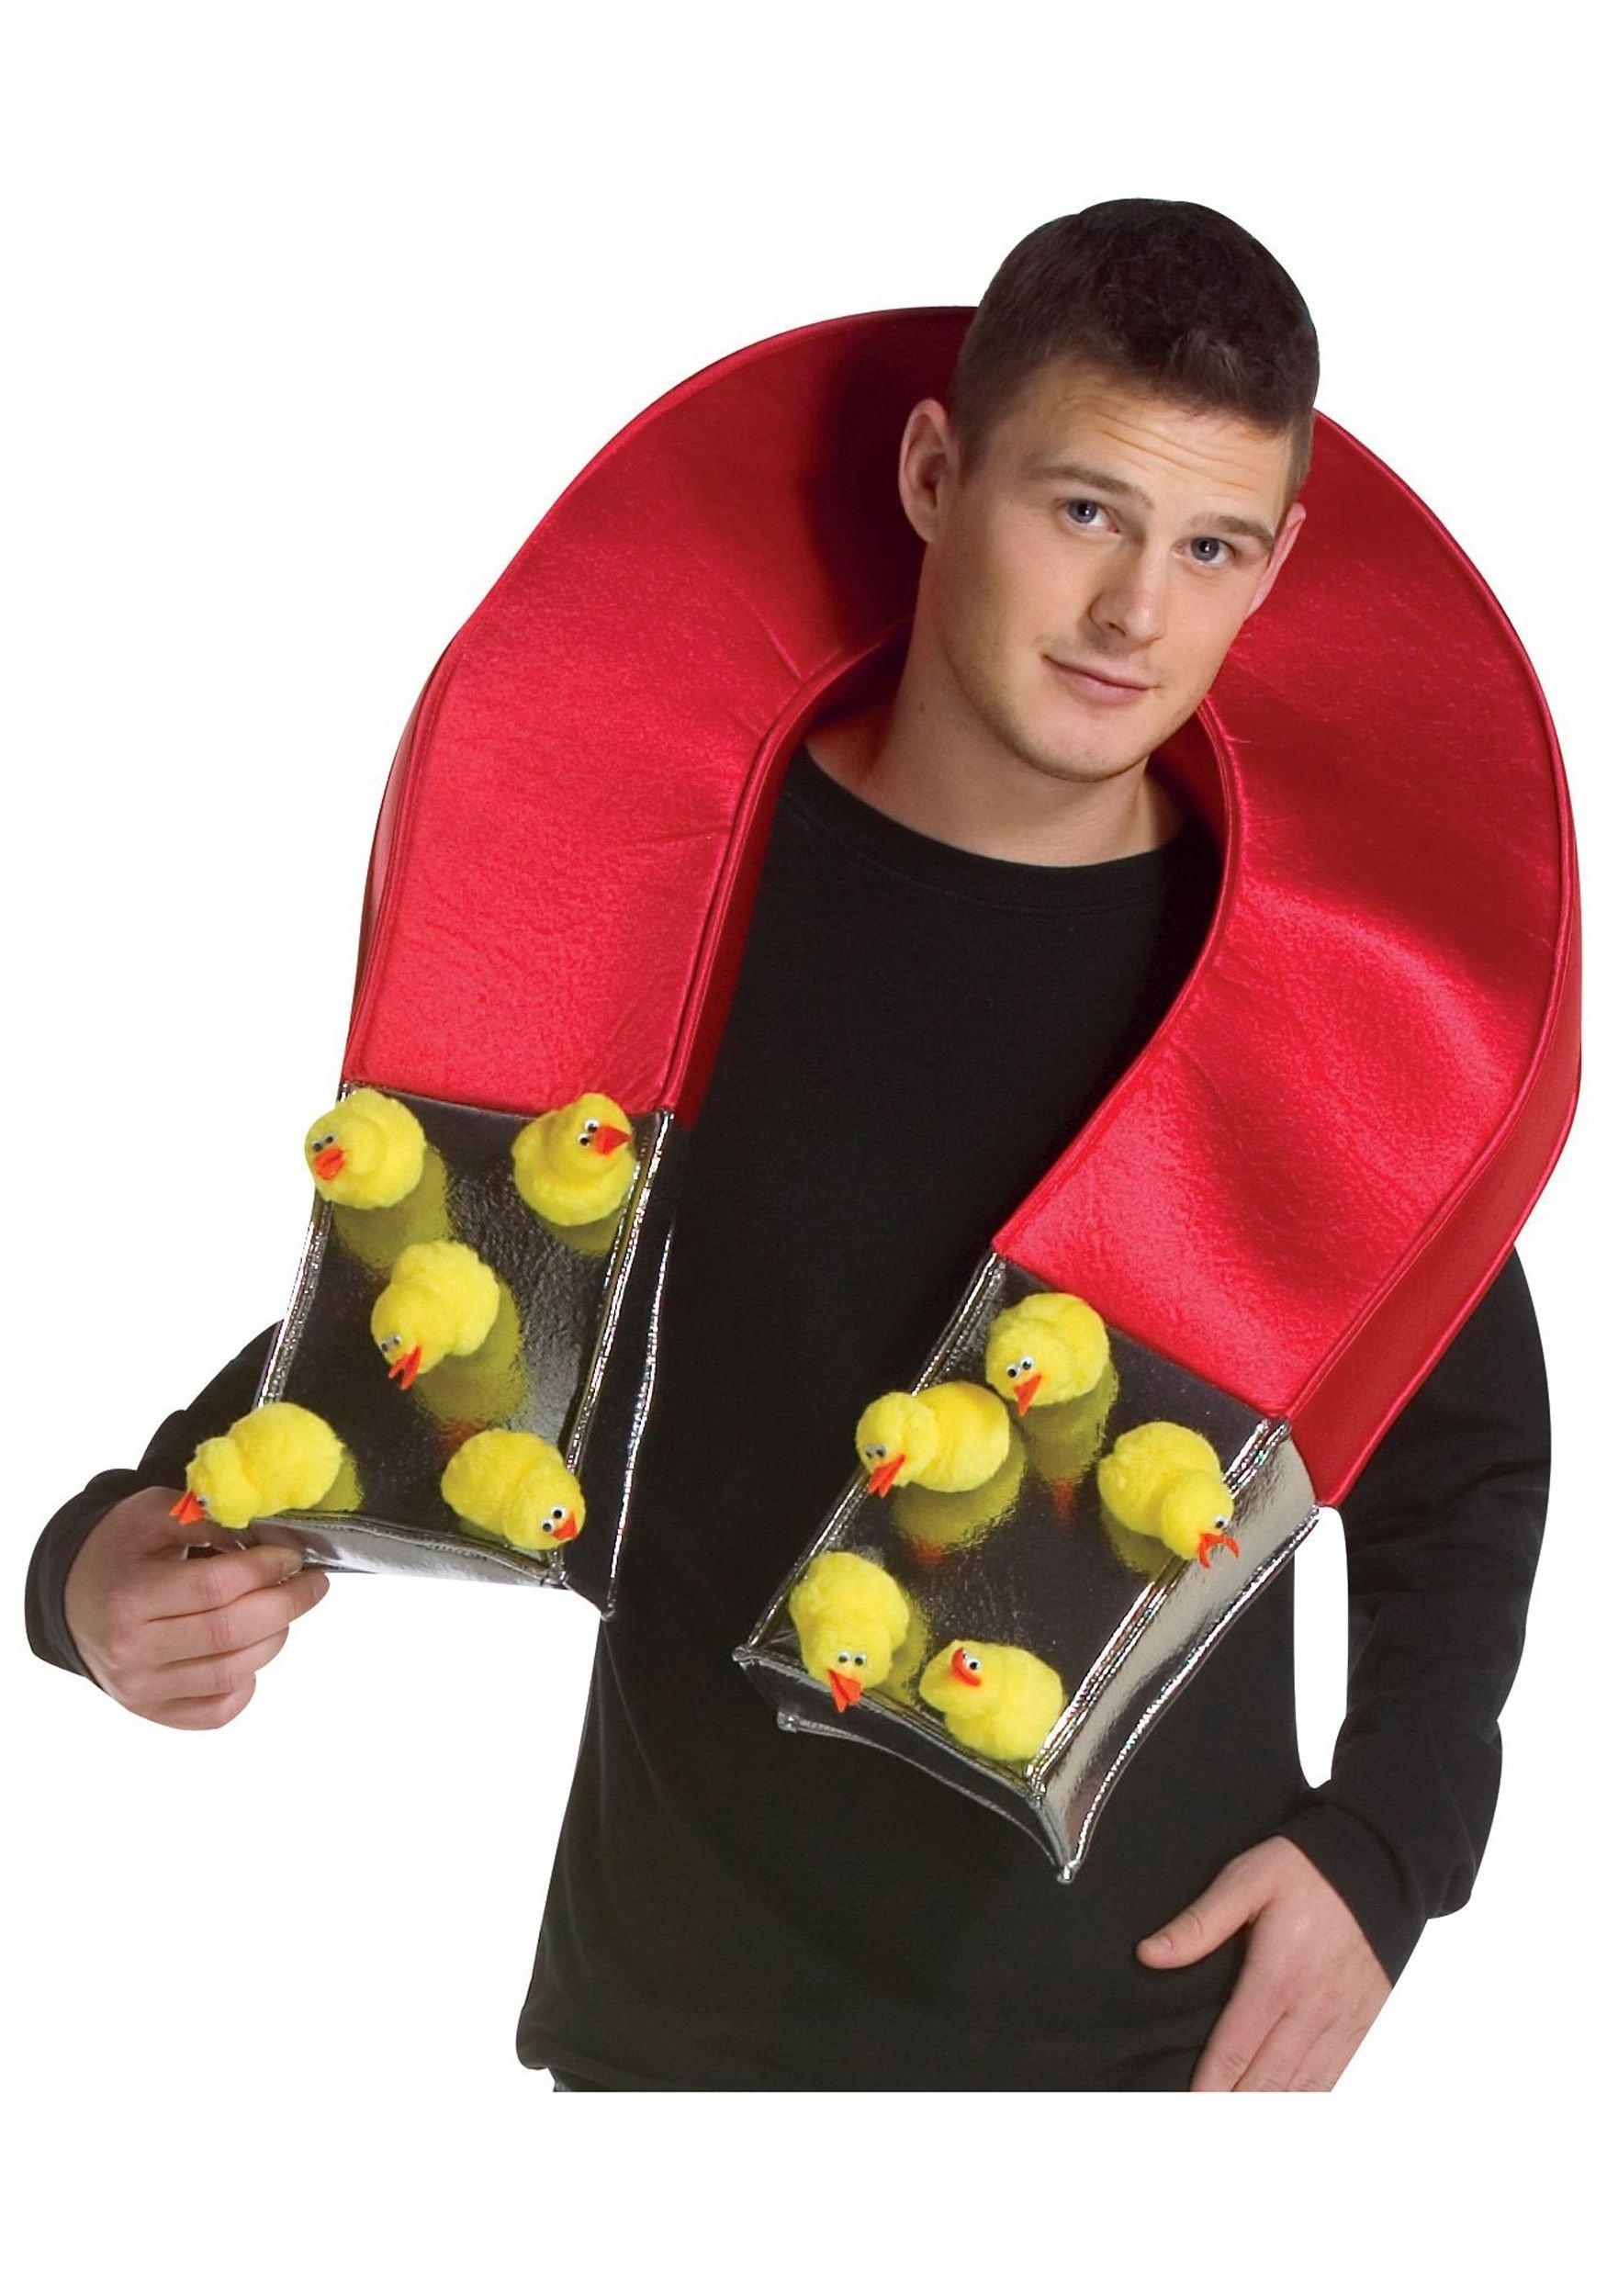 10 Most Recommended Awesome Costume Ideas For Men costume ideas for men home halloween costumes funny costume ideas 1 2021